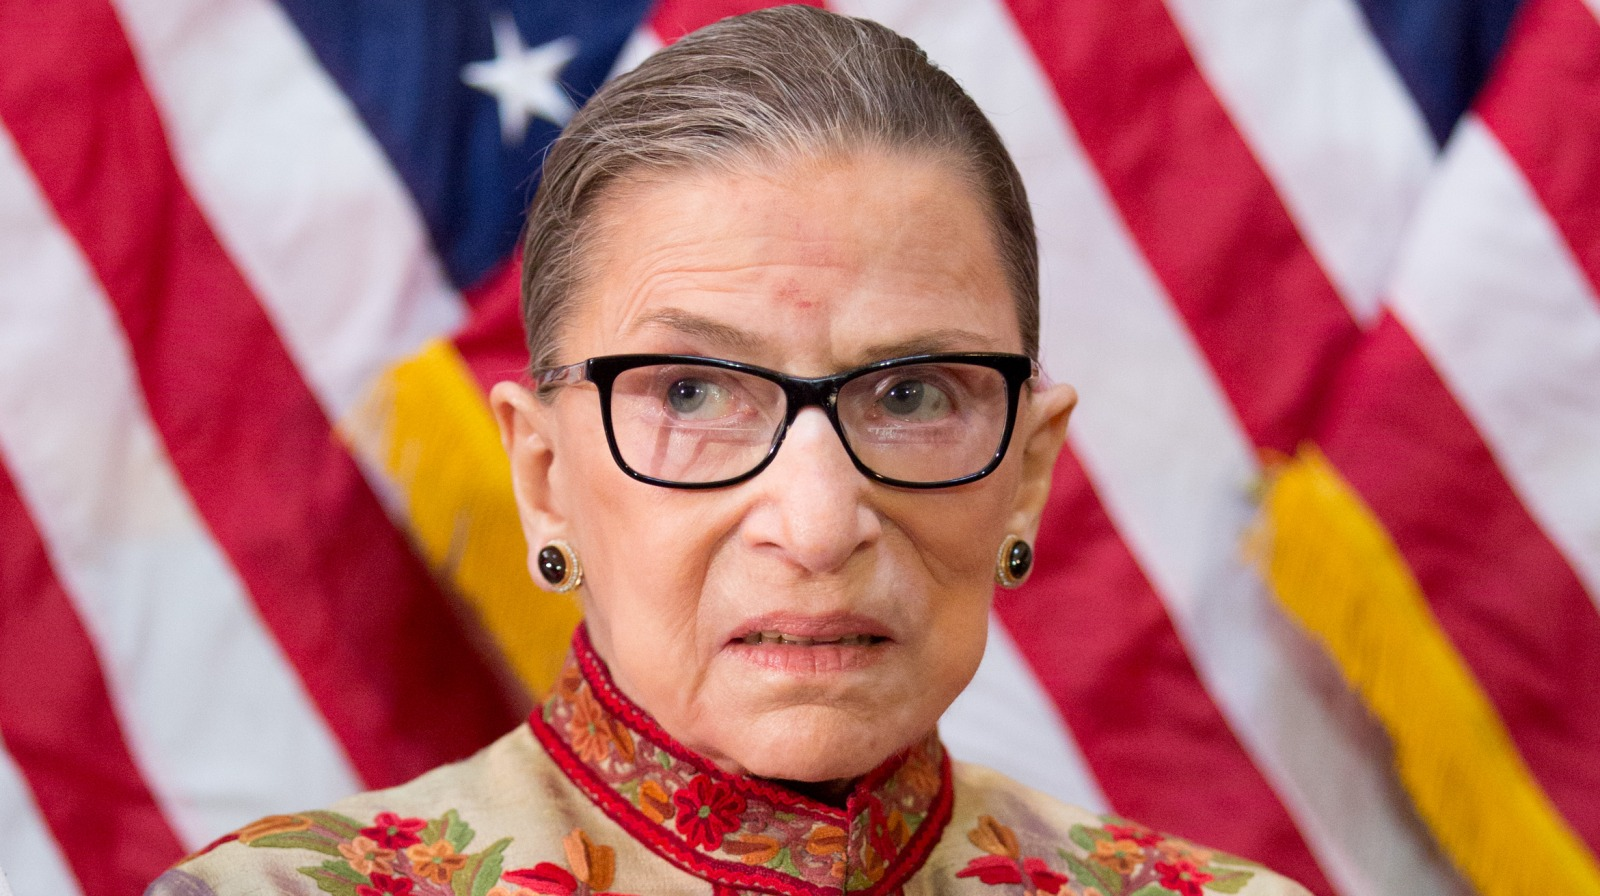 Celebrities react to Ruth Bader Ginsburg's heartbreaking death